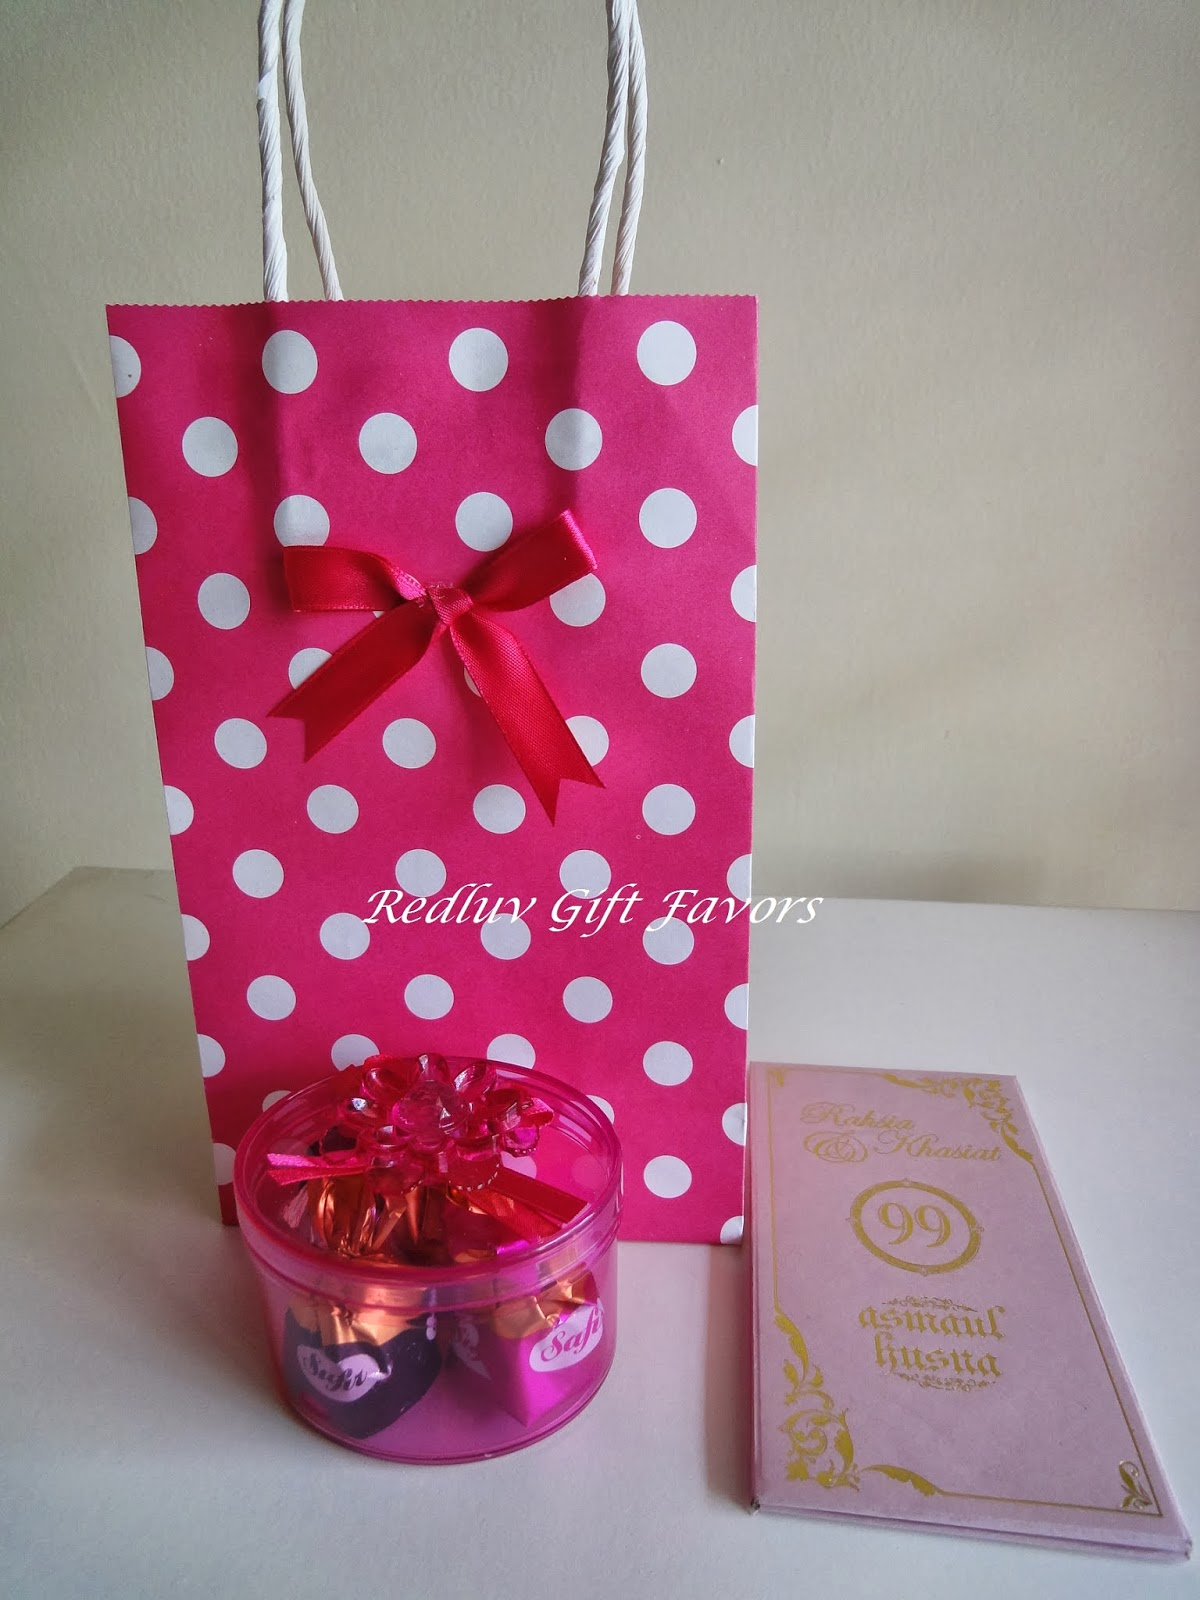 RedLuv Gift Favors: Package